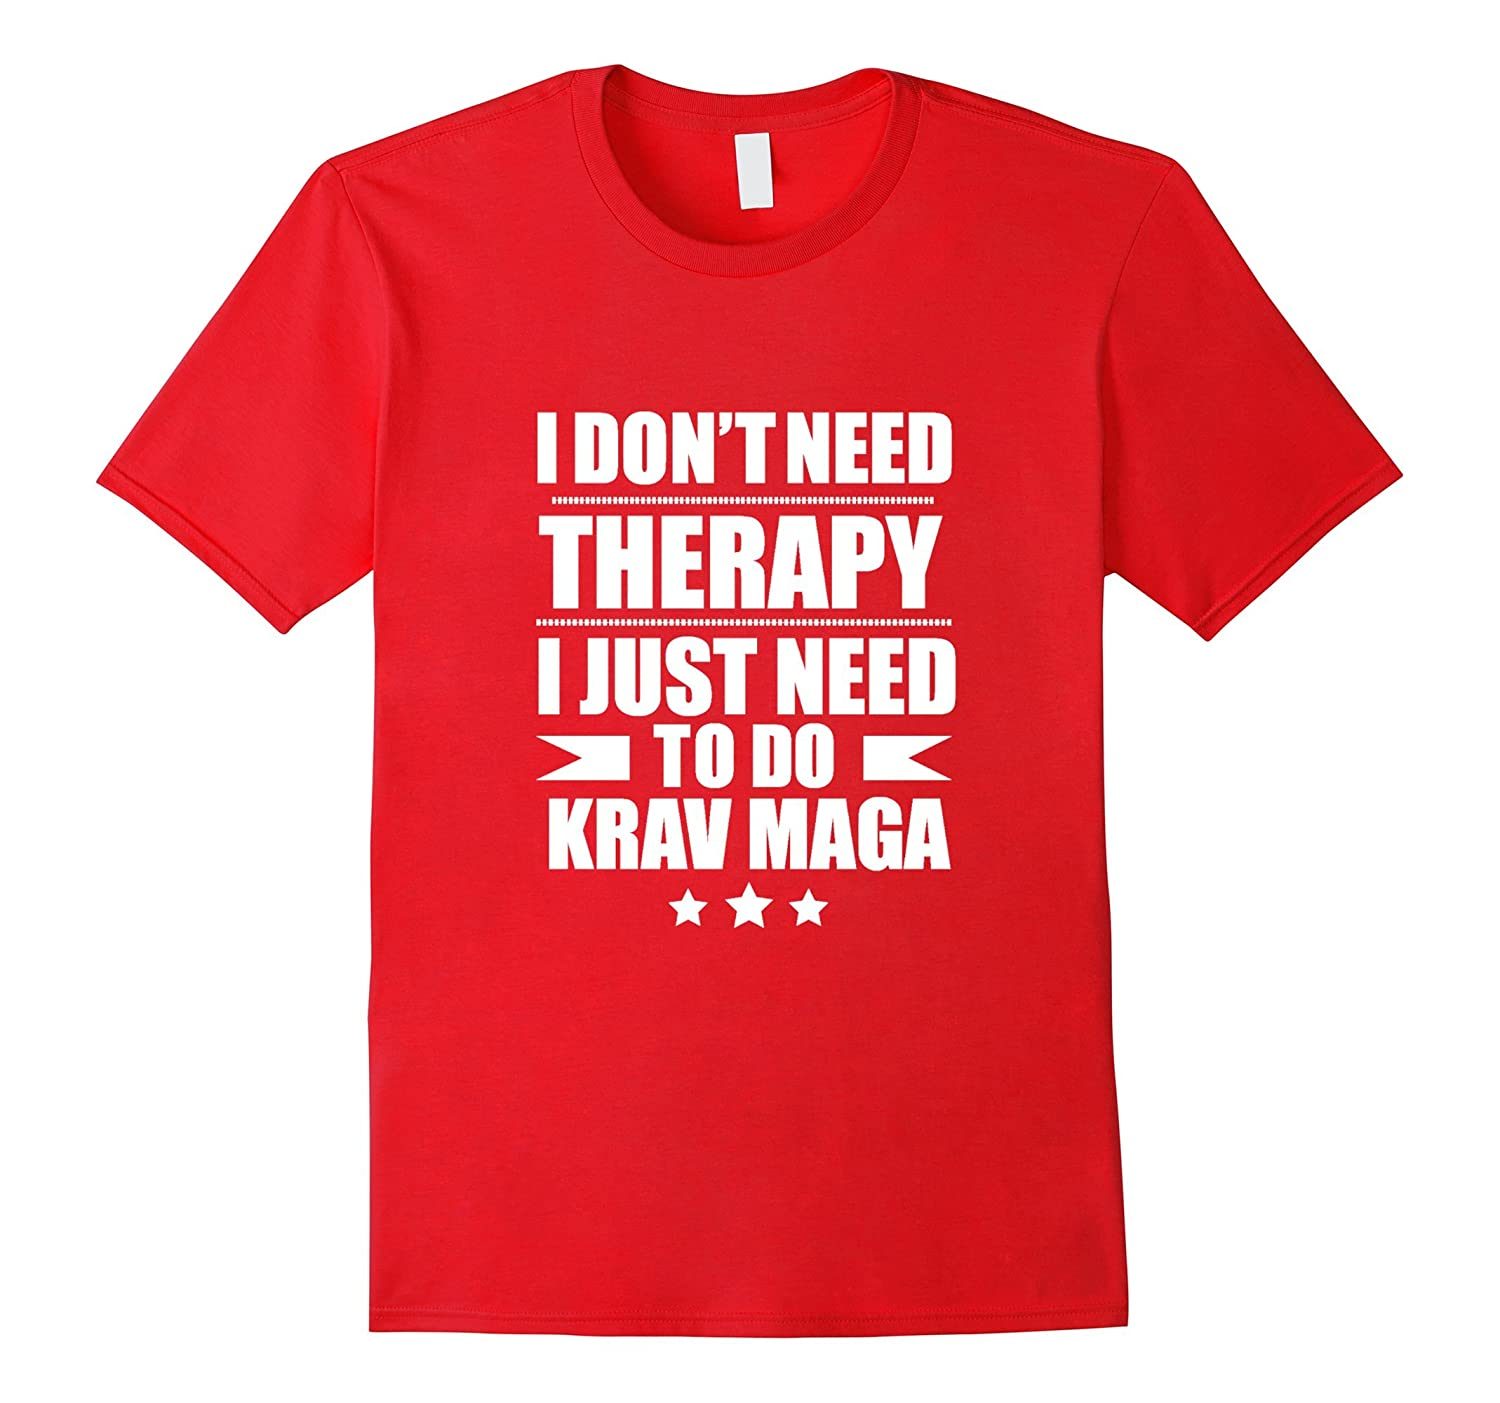 Dont Need Therapy Just Need to do Krav Maga Funny T-shirt-Vaci